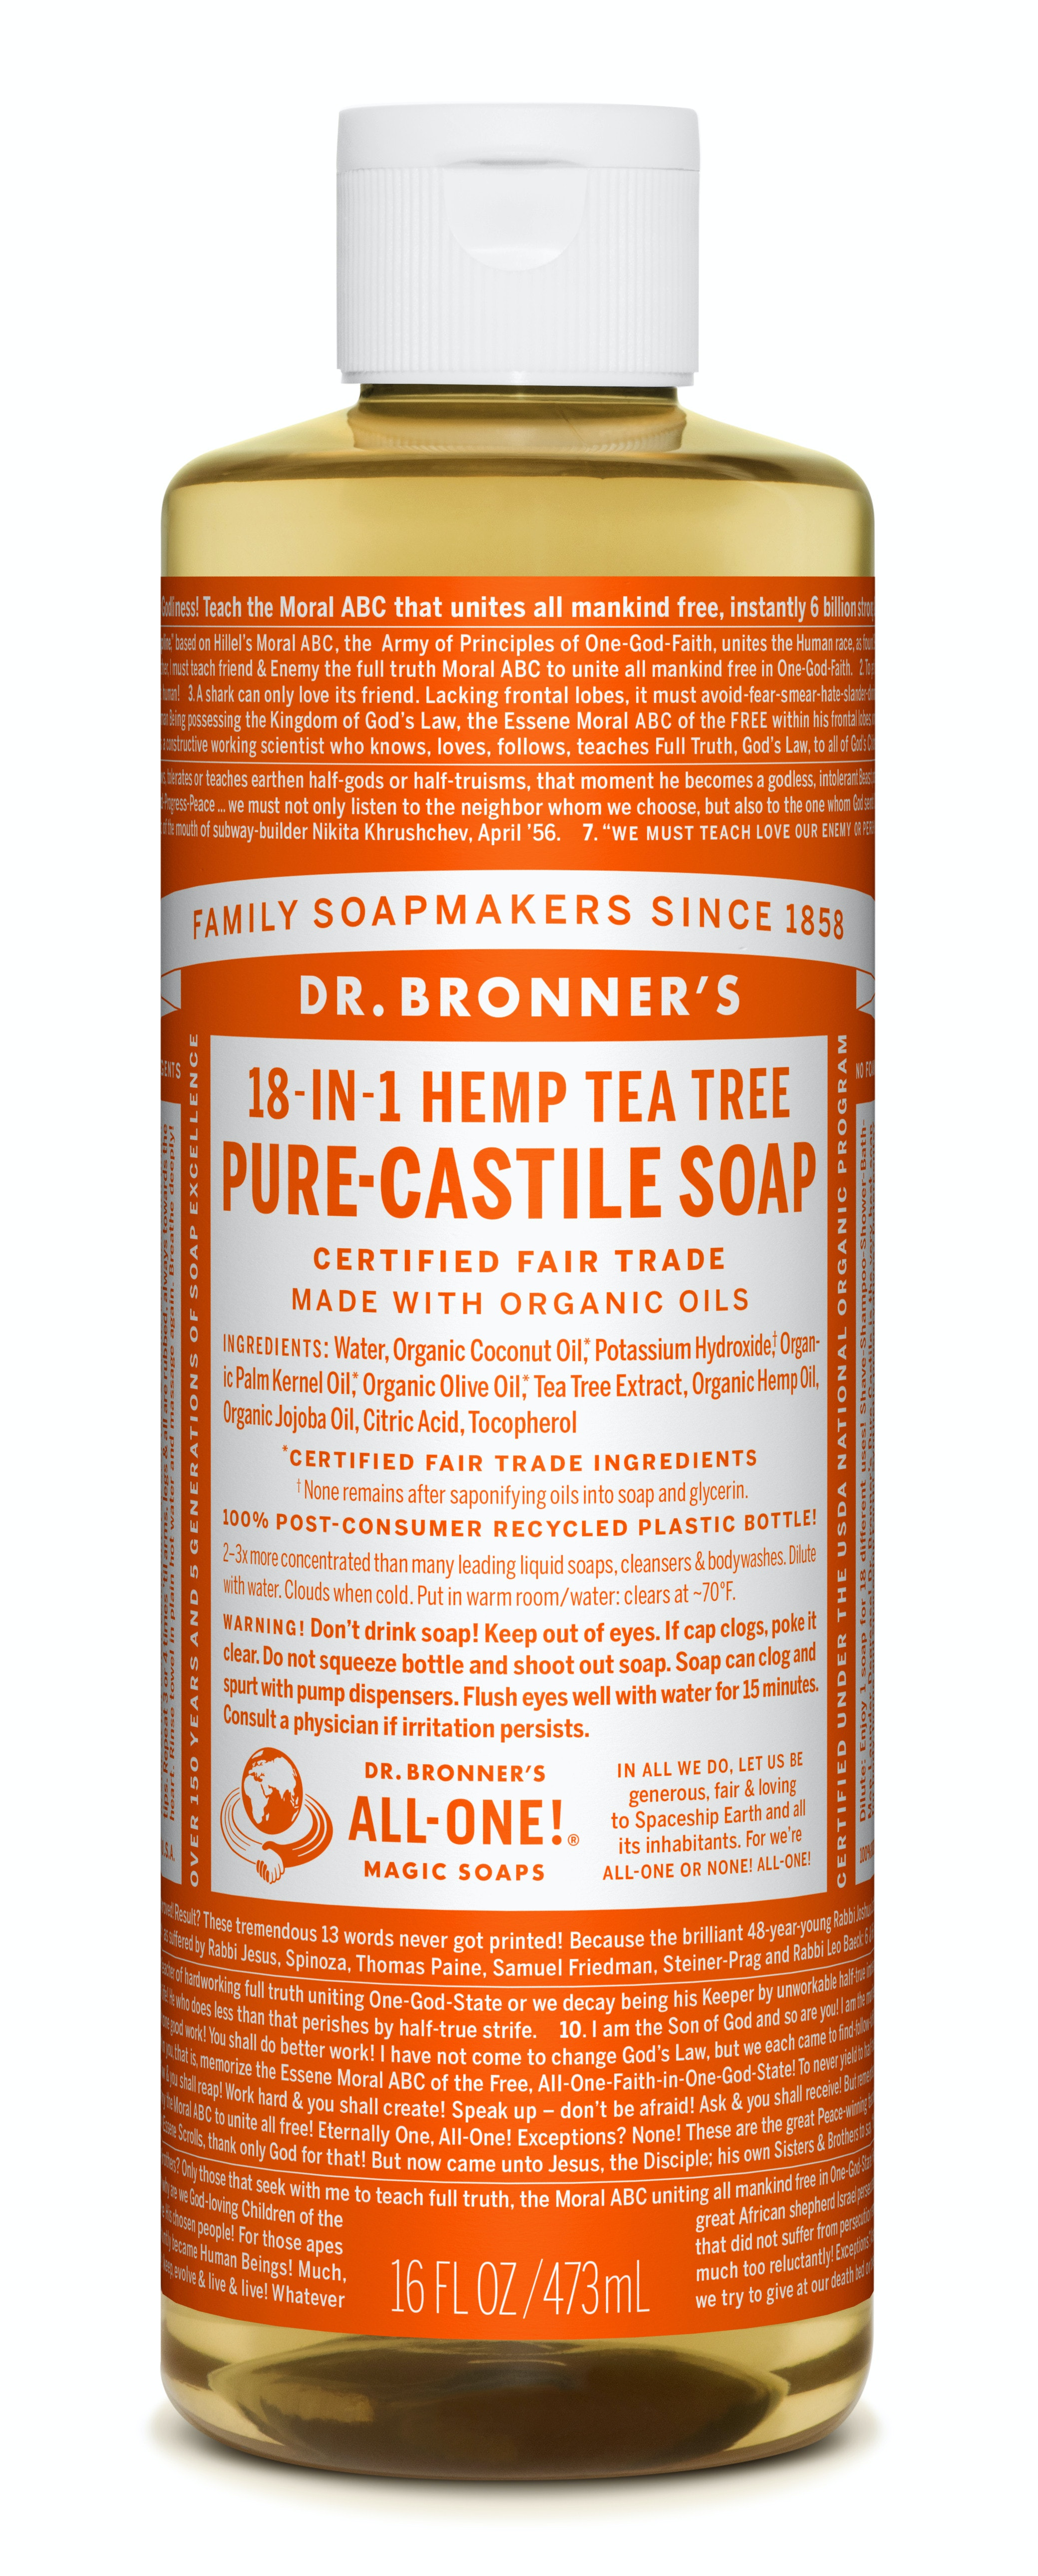 Dr  Bronner's Is Now At Walmart com — Here's What You Should Buy